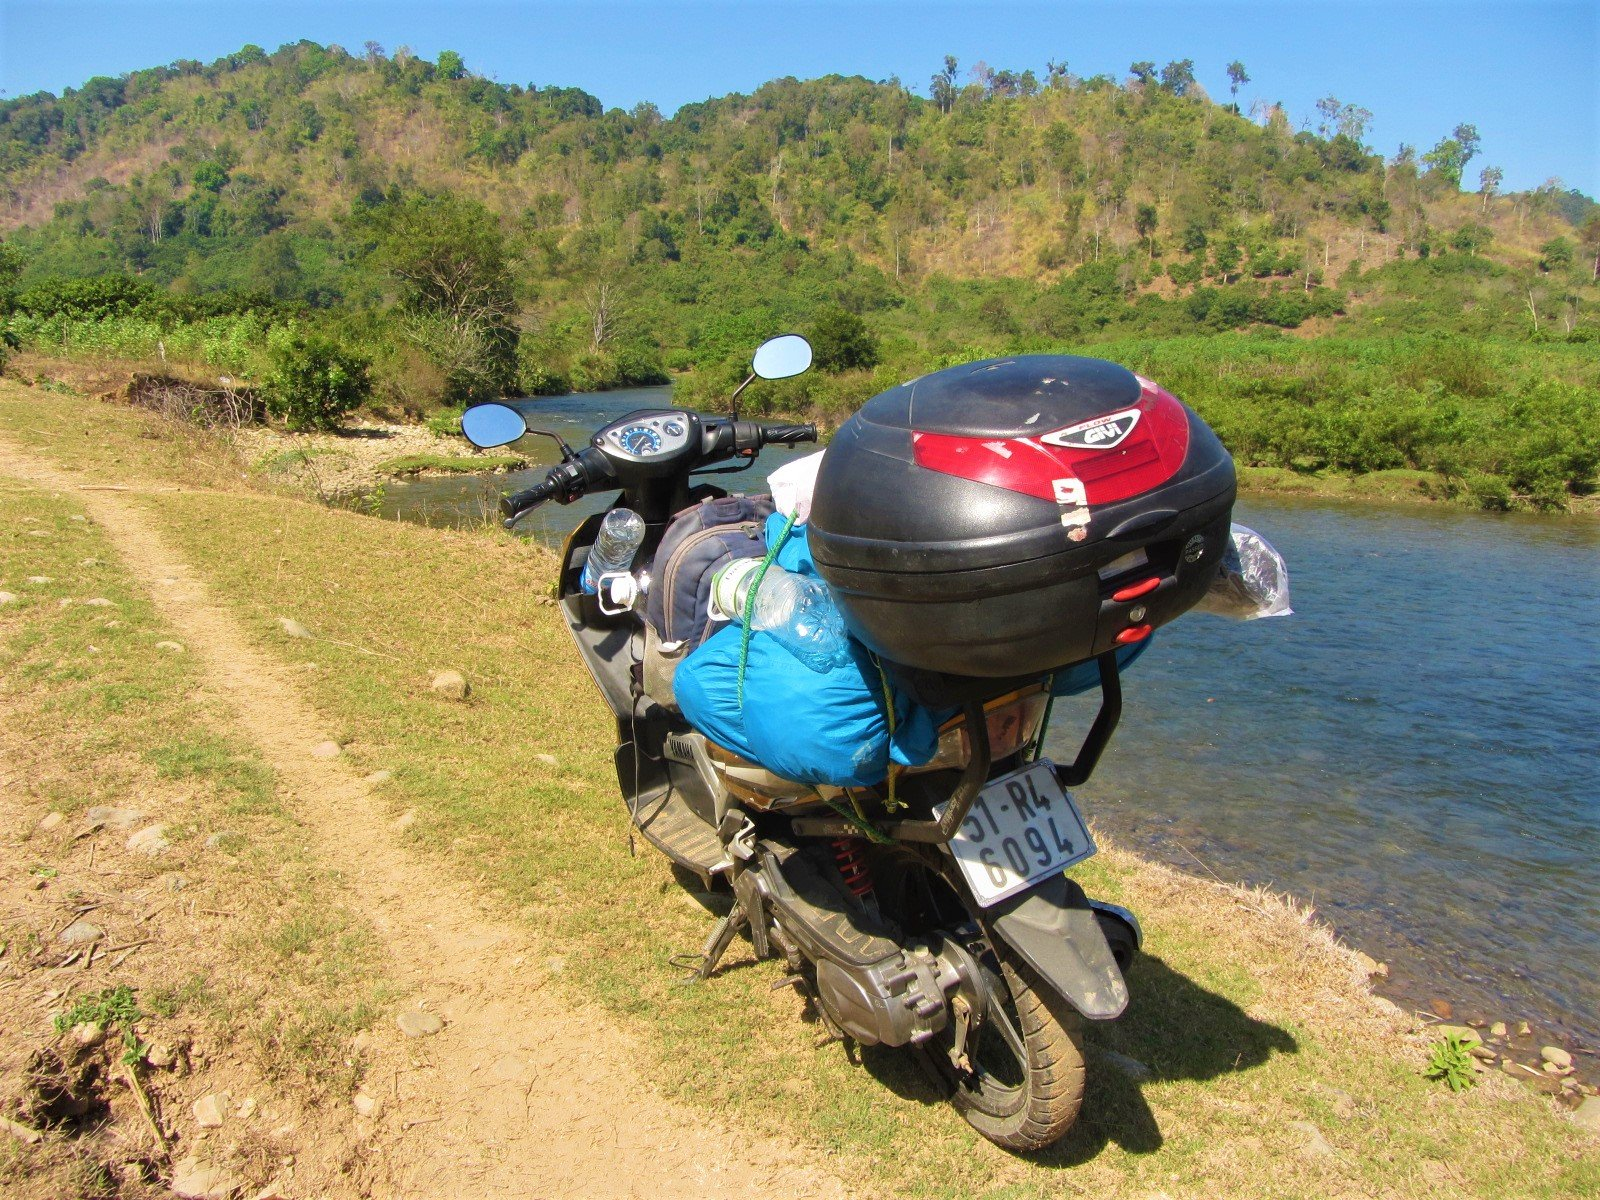 Road to wild camping on the La Nga River, Vietnam